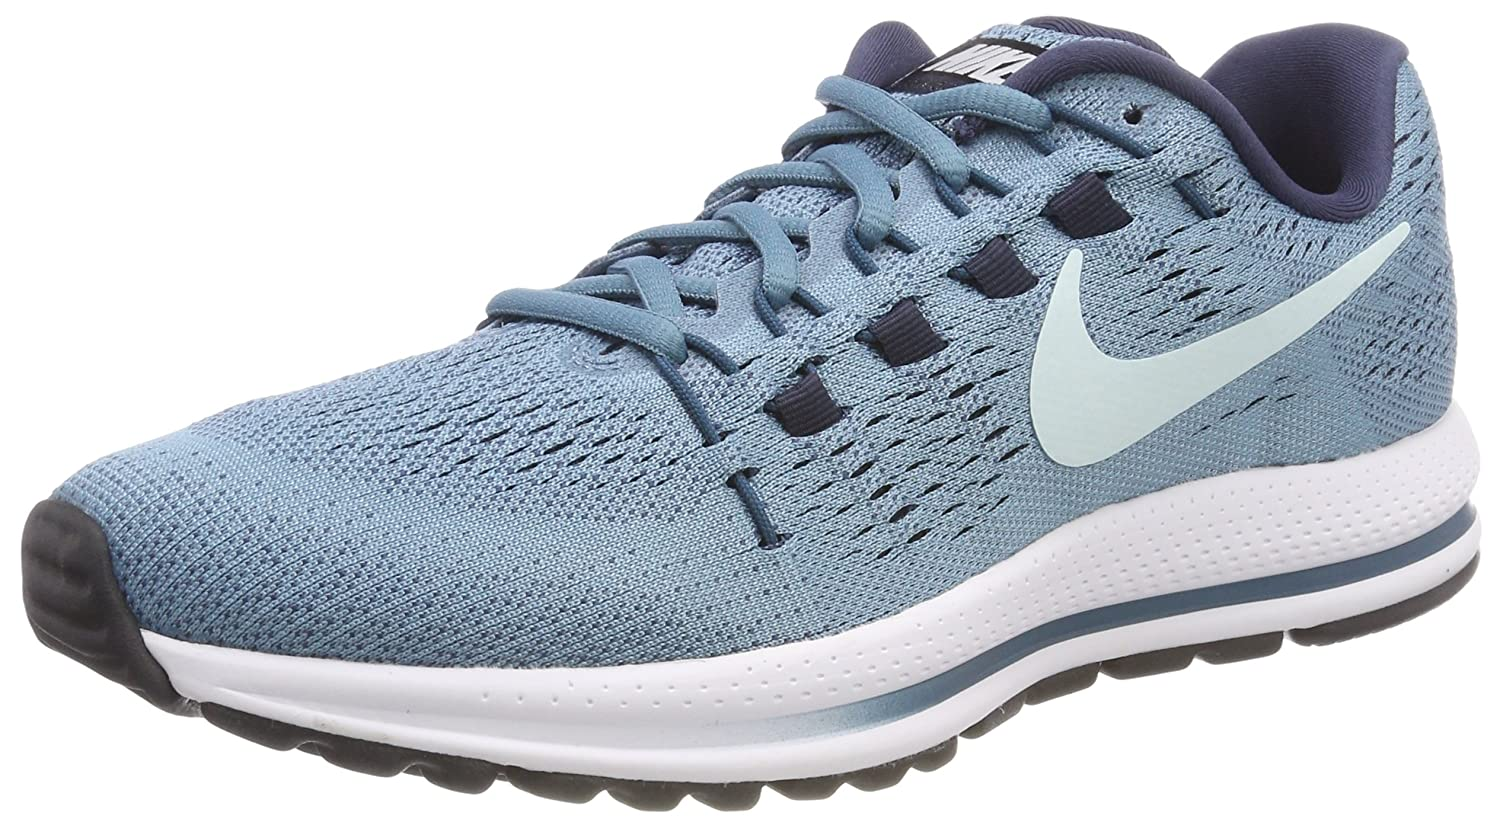 NIKE Men's Air Zoom Vomero 12 Running Shoe B072KNQ576 6 B(M) US|Cerulean/Glacier Blue